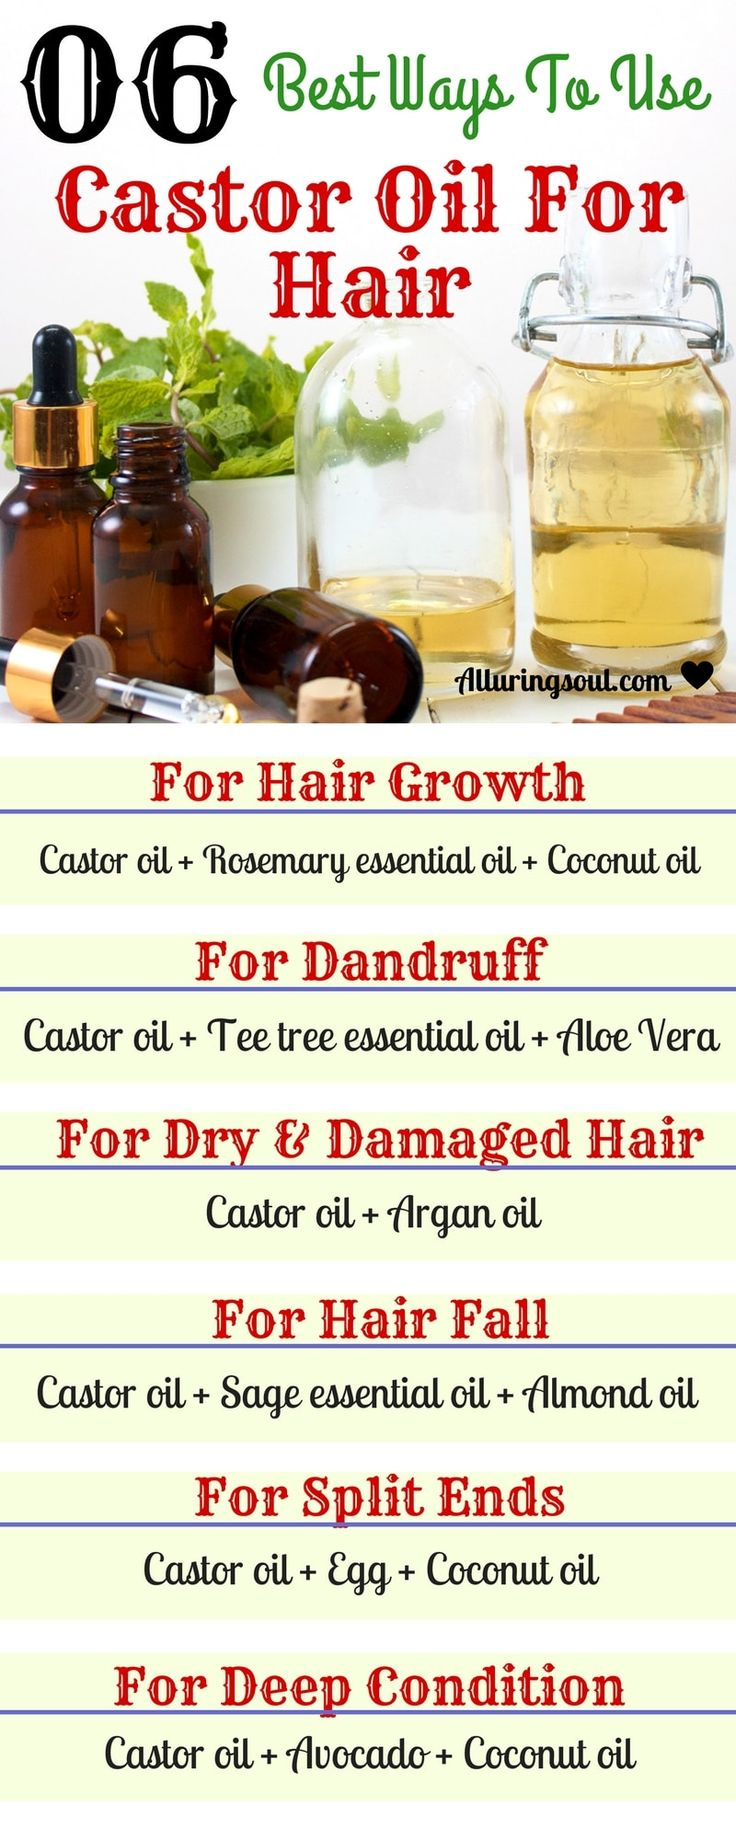 Diy Hair Masks And Face Masks 2018 Castor Oil Is Best For Hair